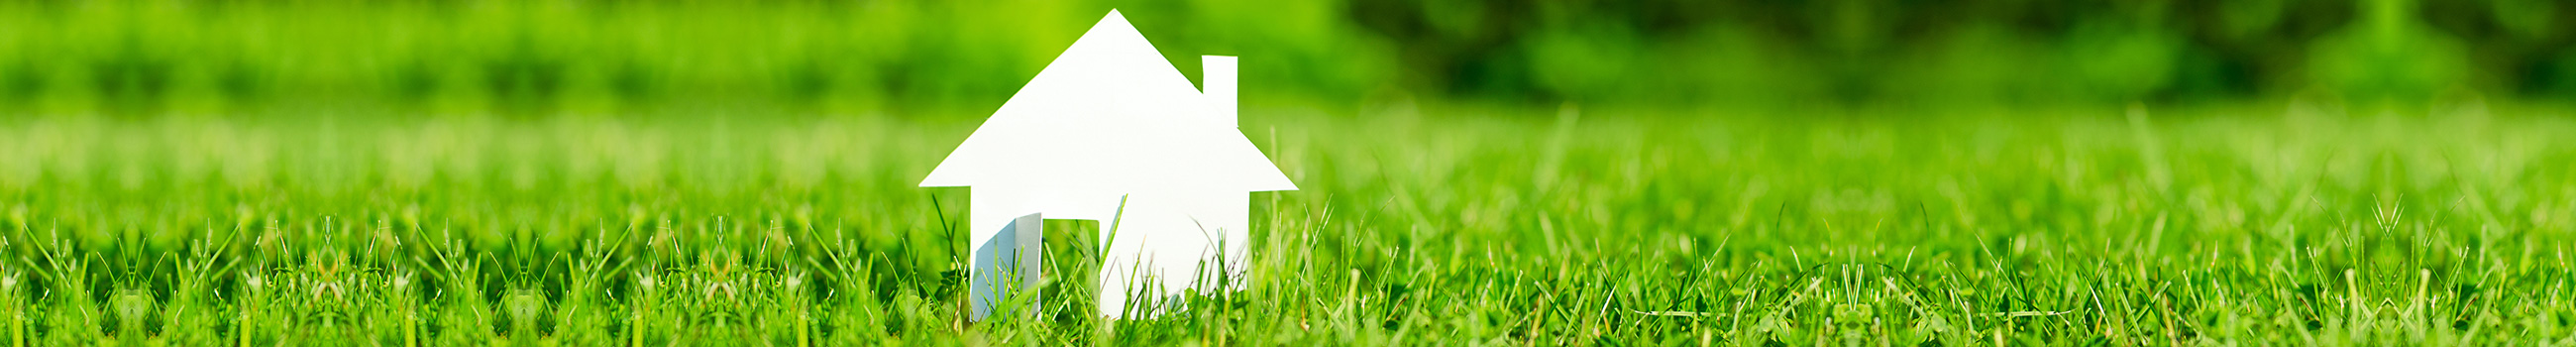 house_grass_slider_image